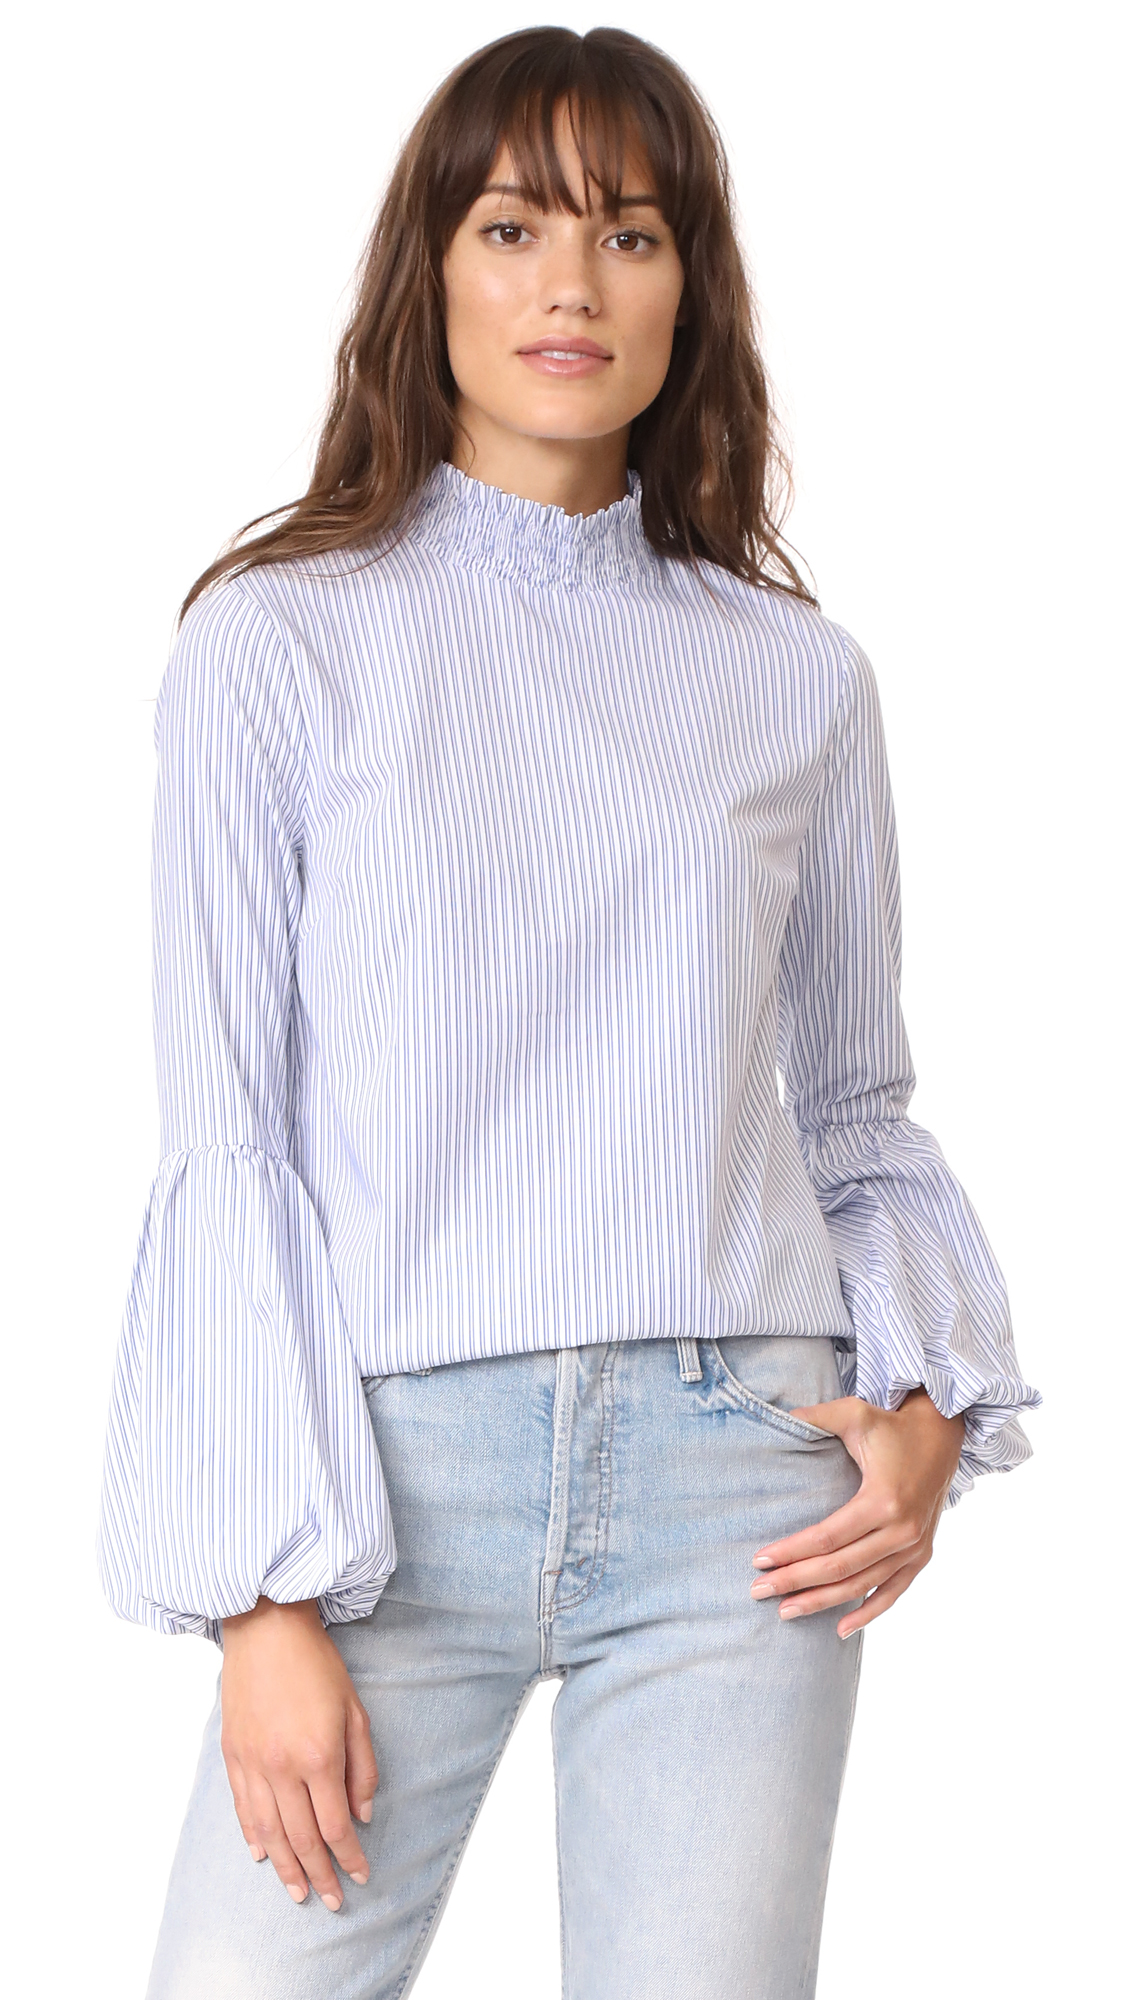 ENGLISH FACTORY Striped Balloon Blouse - Blue Stripe